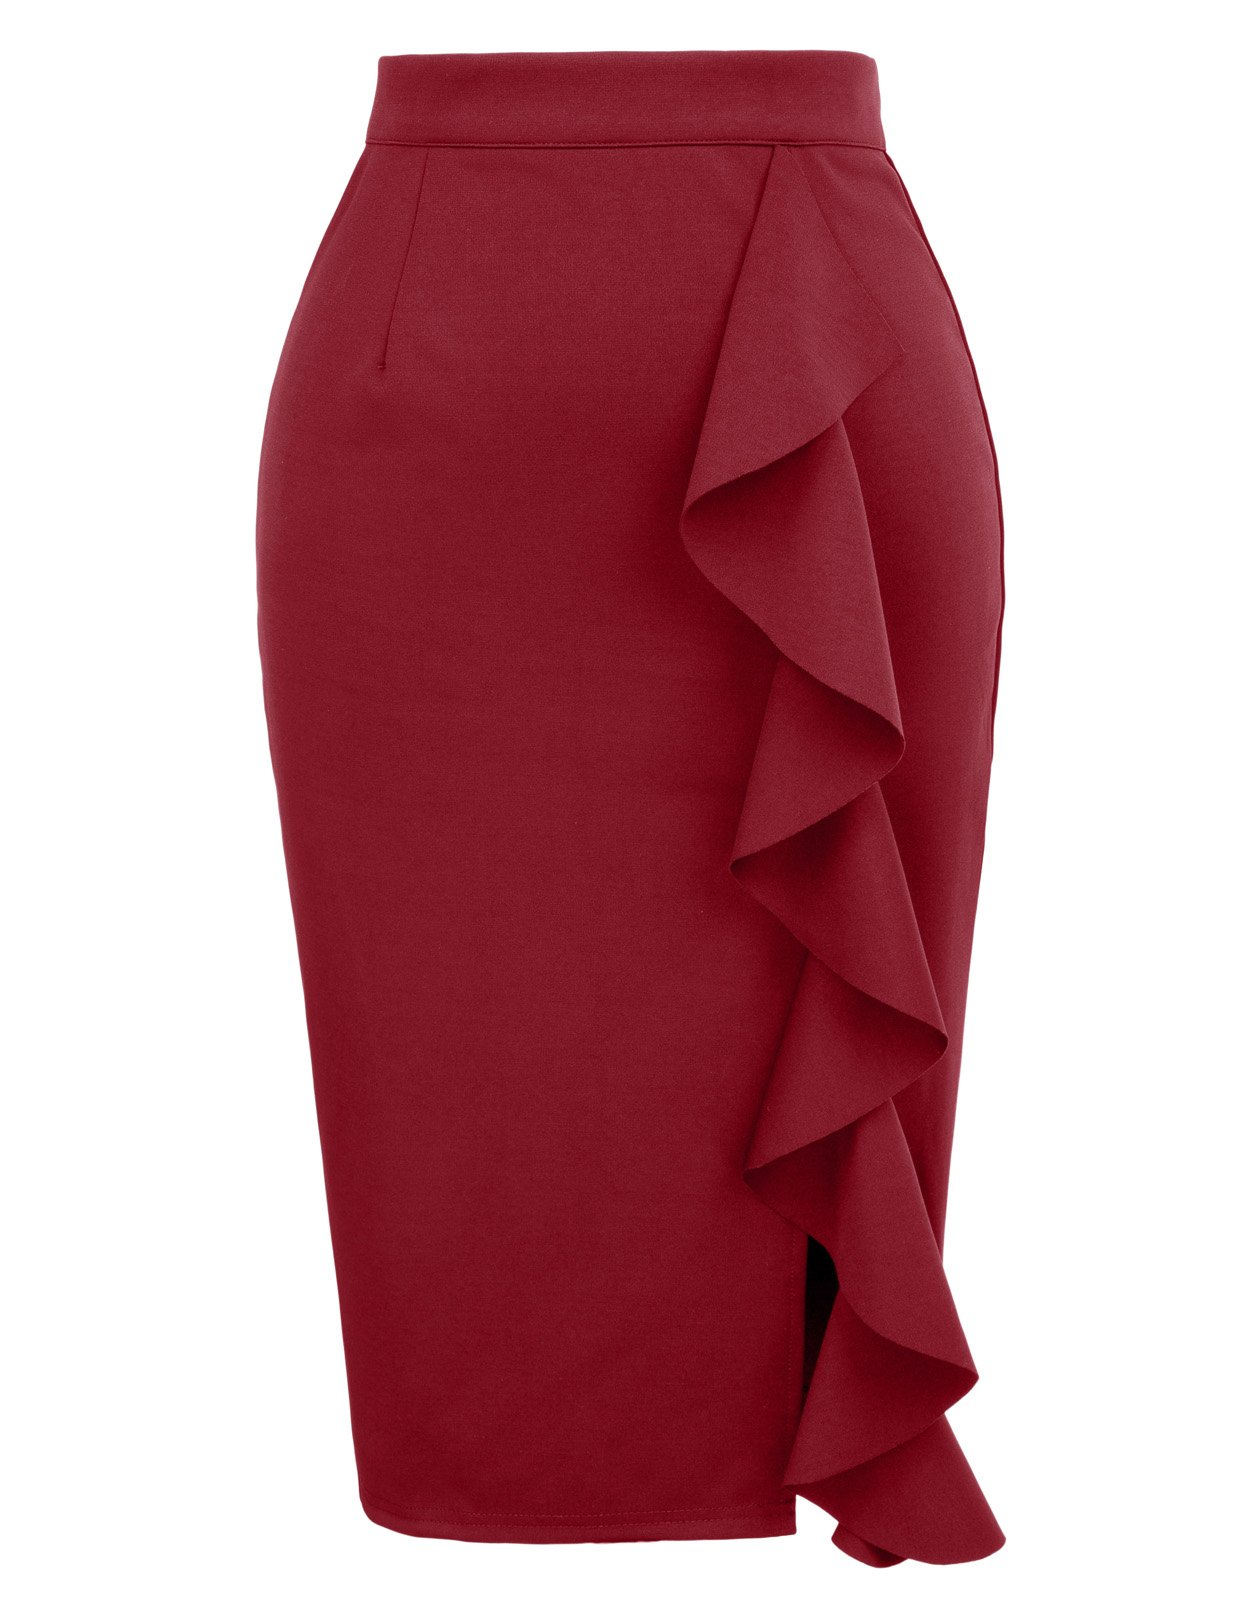 GRACE KARIN Women's Classic Slit Ruched Solid Pencil Skirt Size 2XL Wine Red